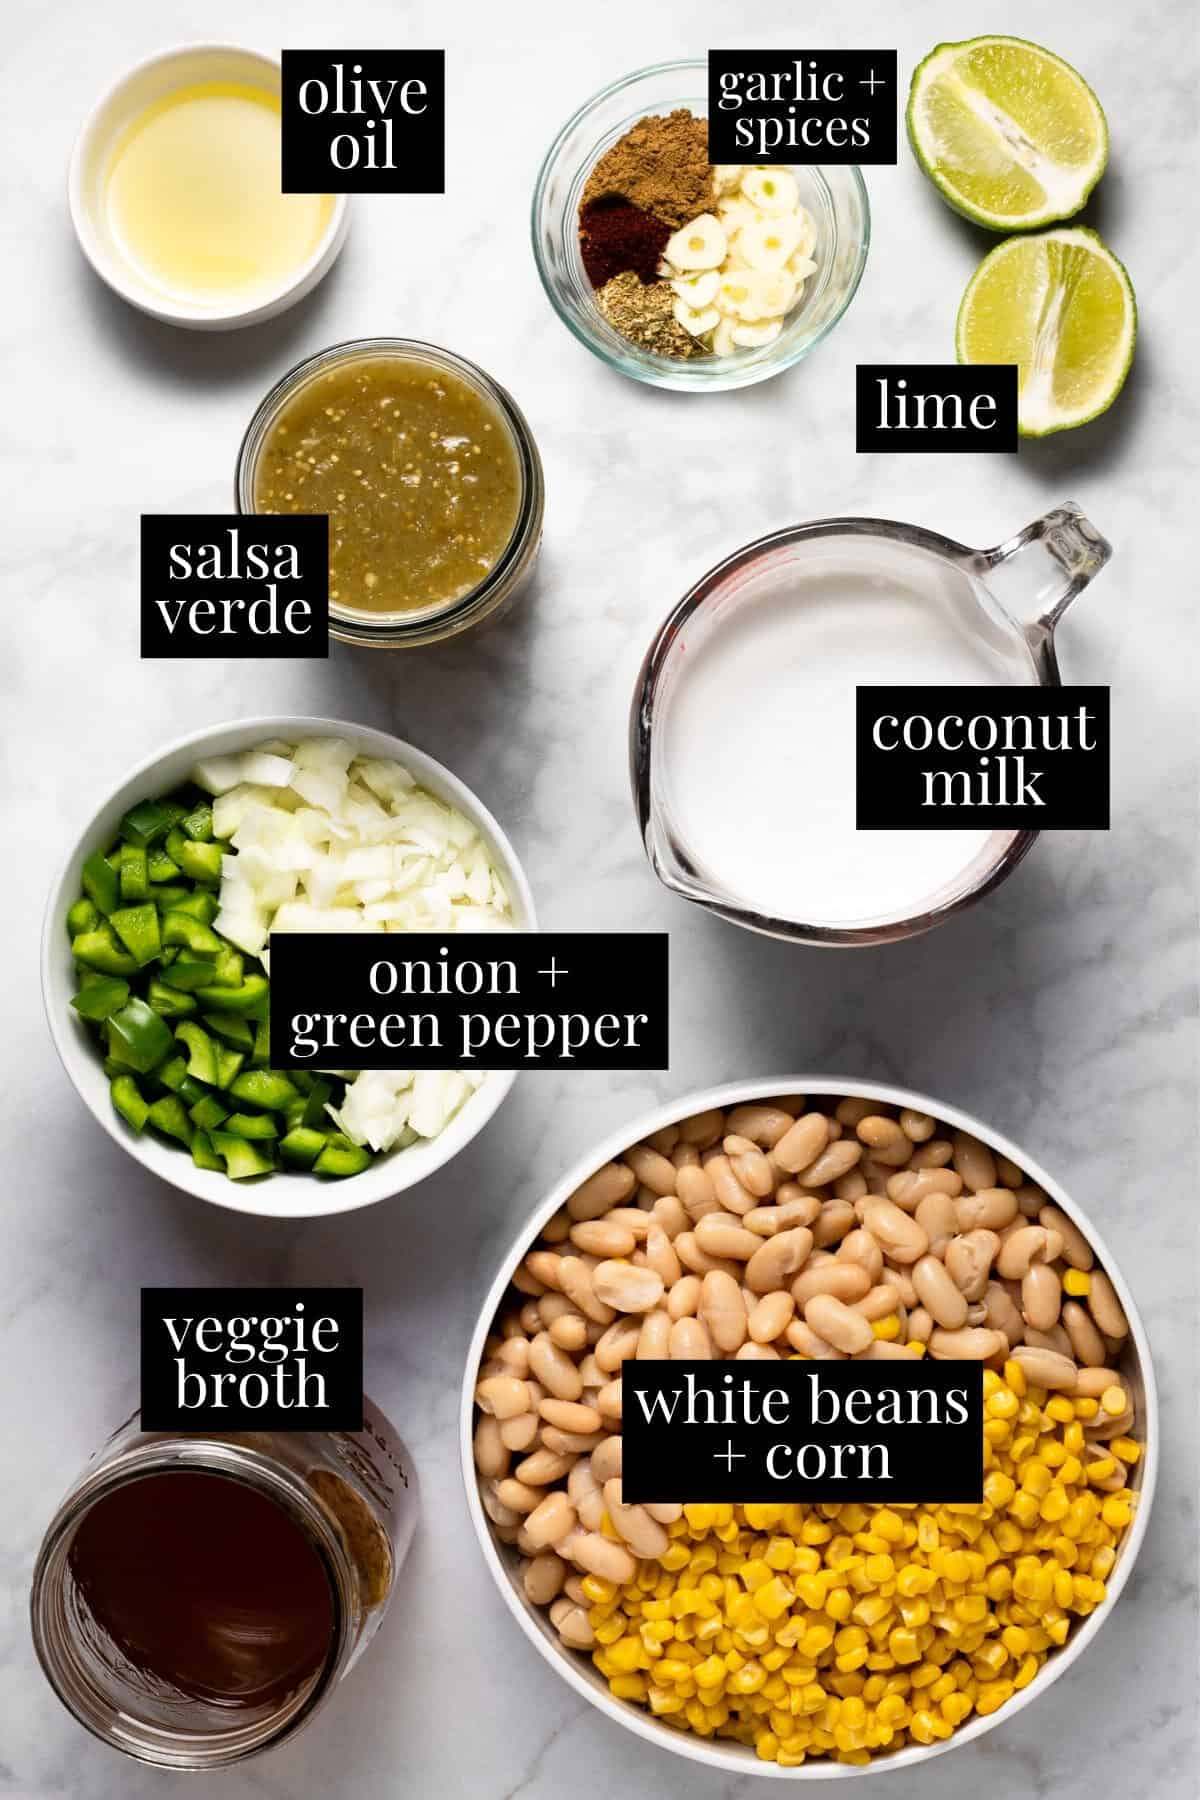 White marble counter top with ingredients to make white bean chili